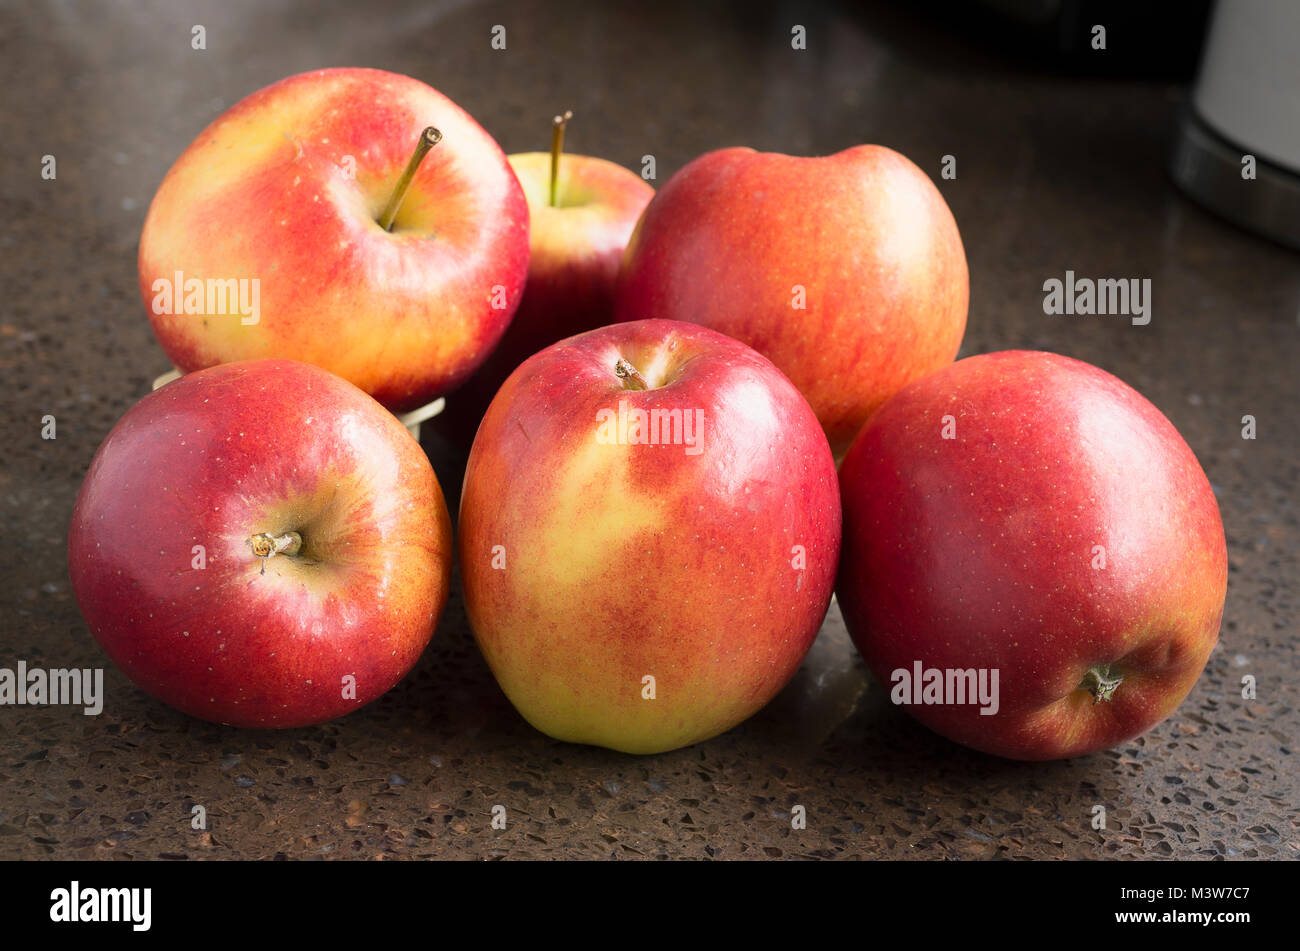 Jazz apples are crisp and juicy eating apples in an English winter - Stock Image